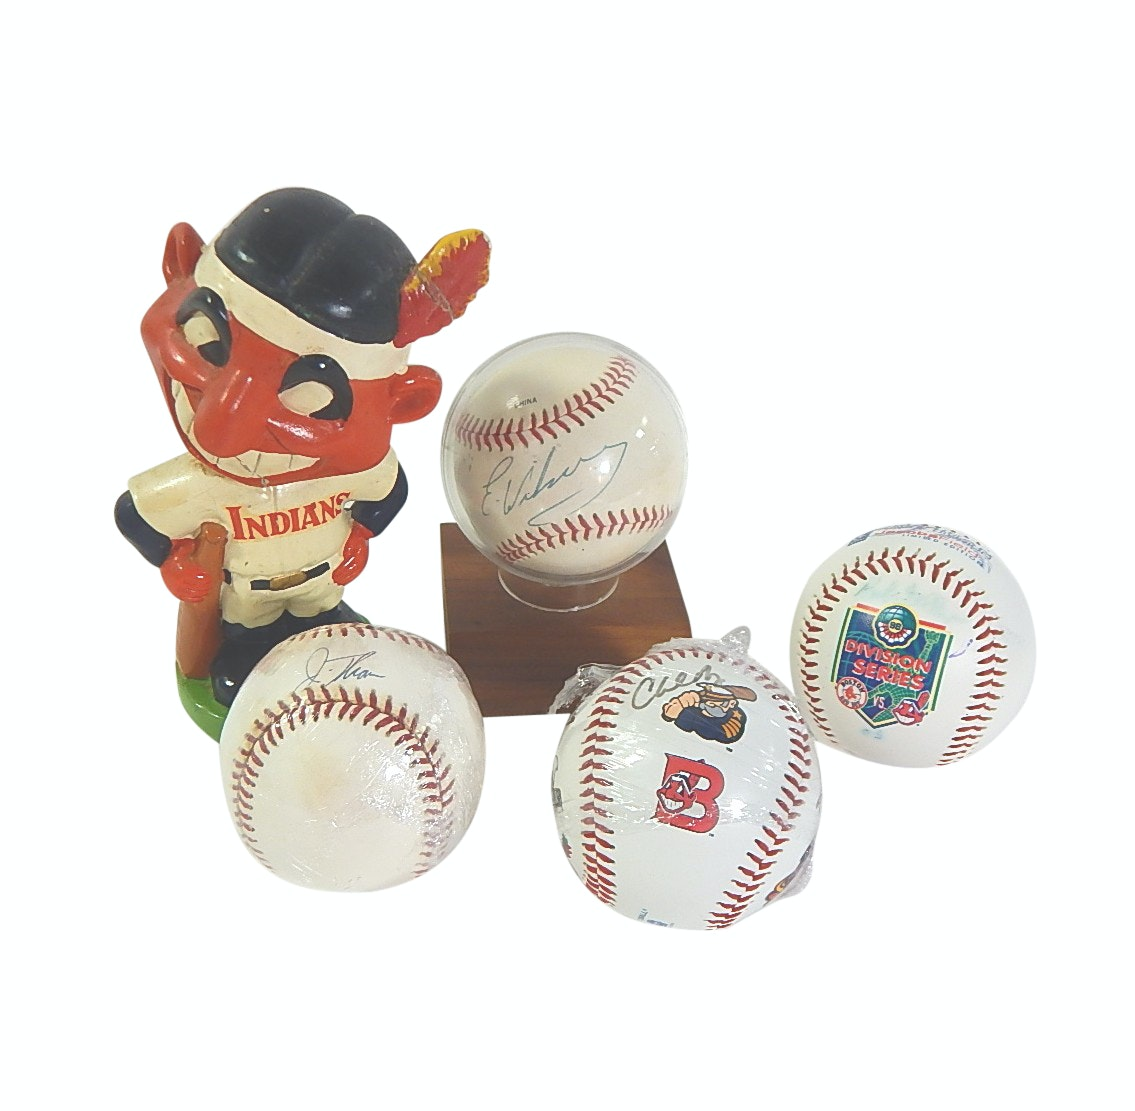 1960s Cleveland Indians Bobblehead and Signed Baseballs with Feller and Thome